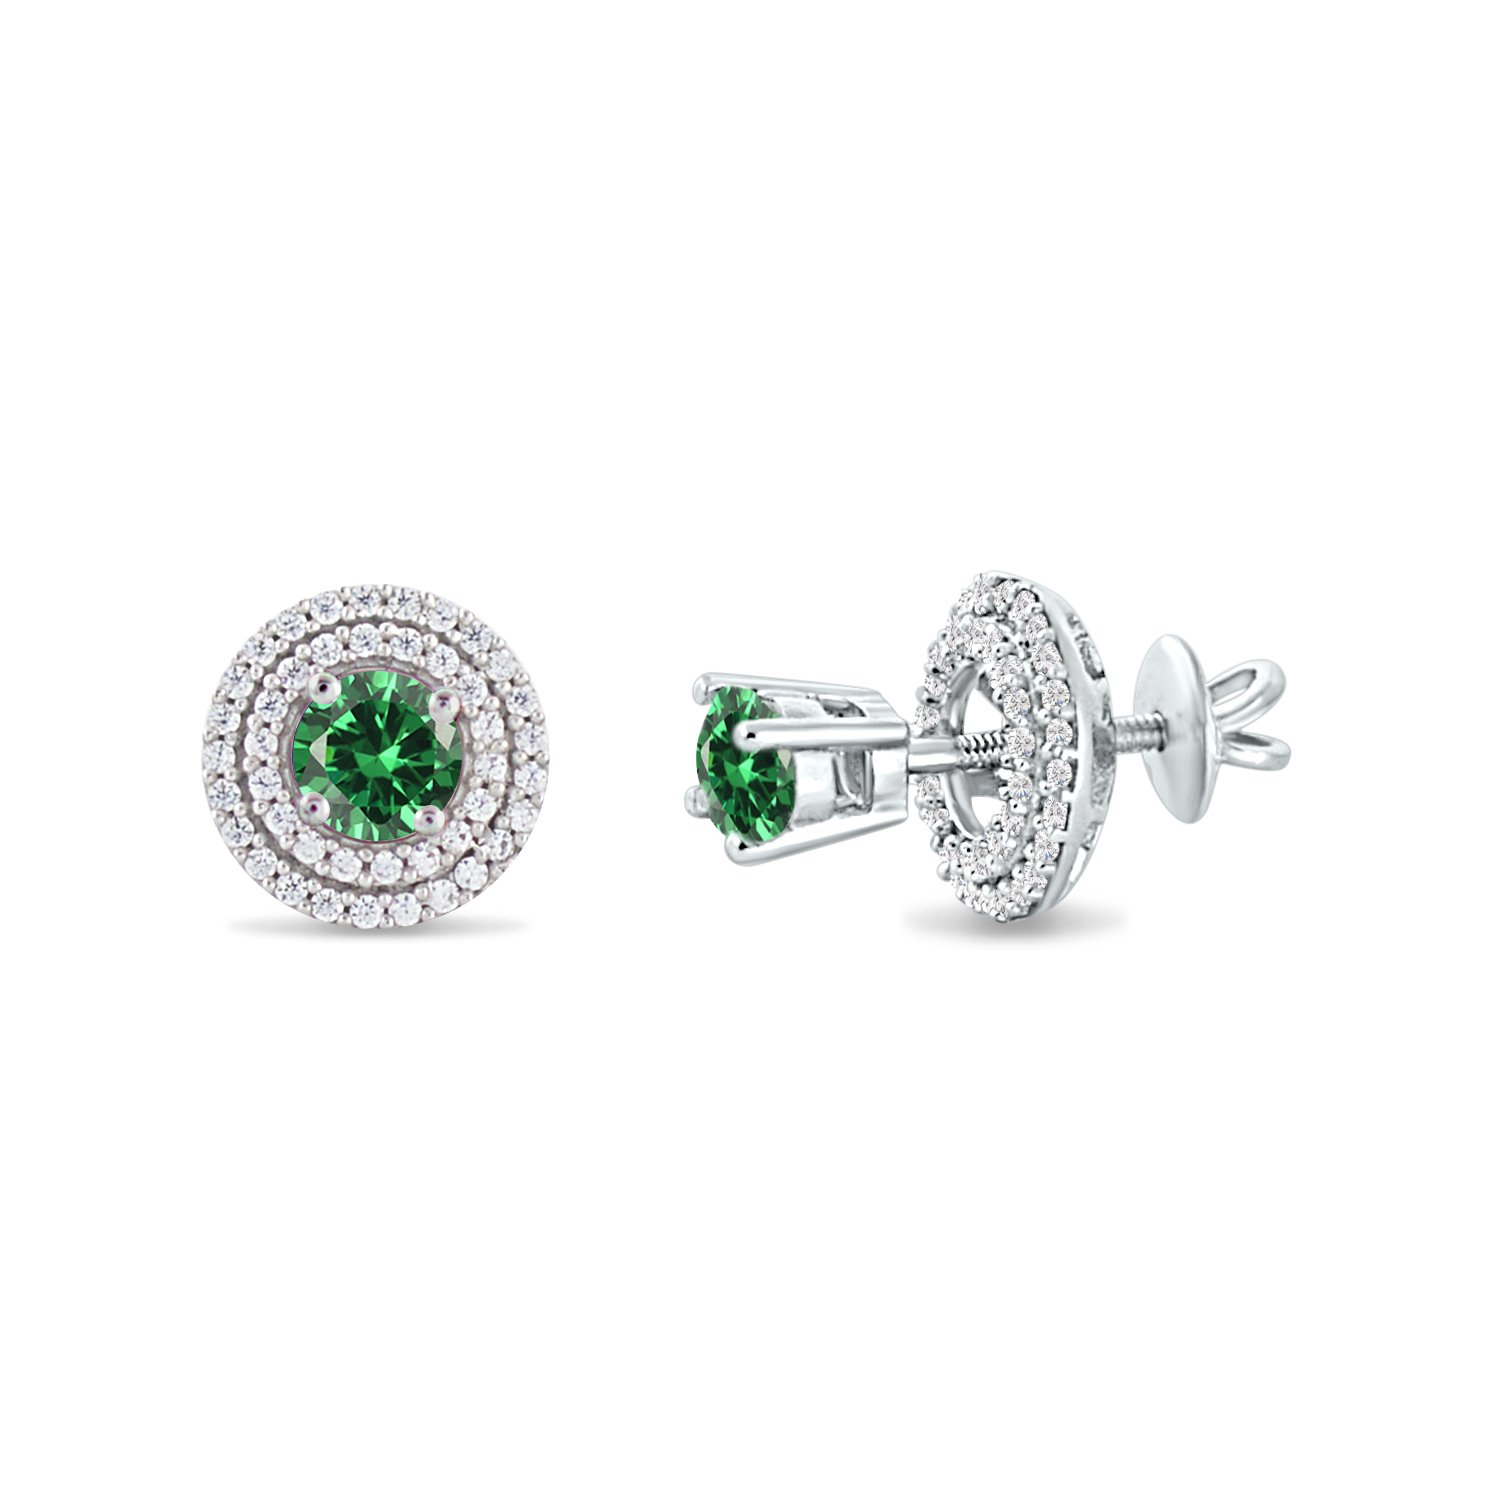 created-emerald, white-gold-plated-base Silver Dew Round Simulated Gemstone Halo Round Stud Earrings for Womens Girls in 14k White Gold Over